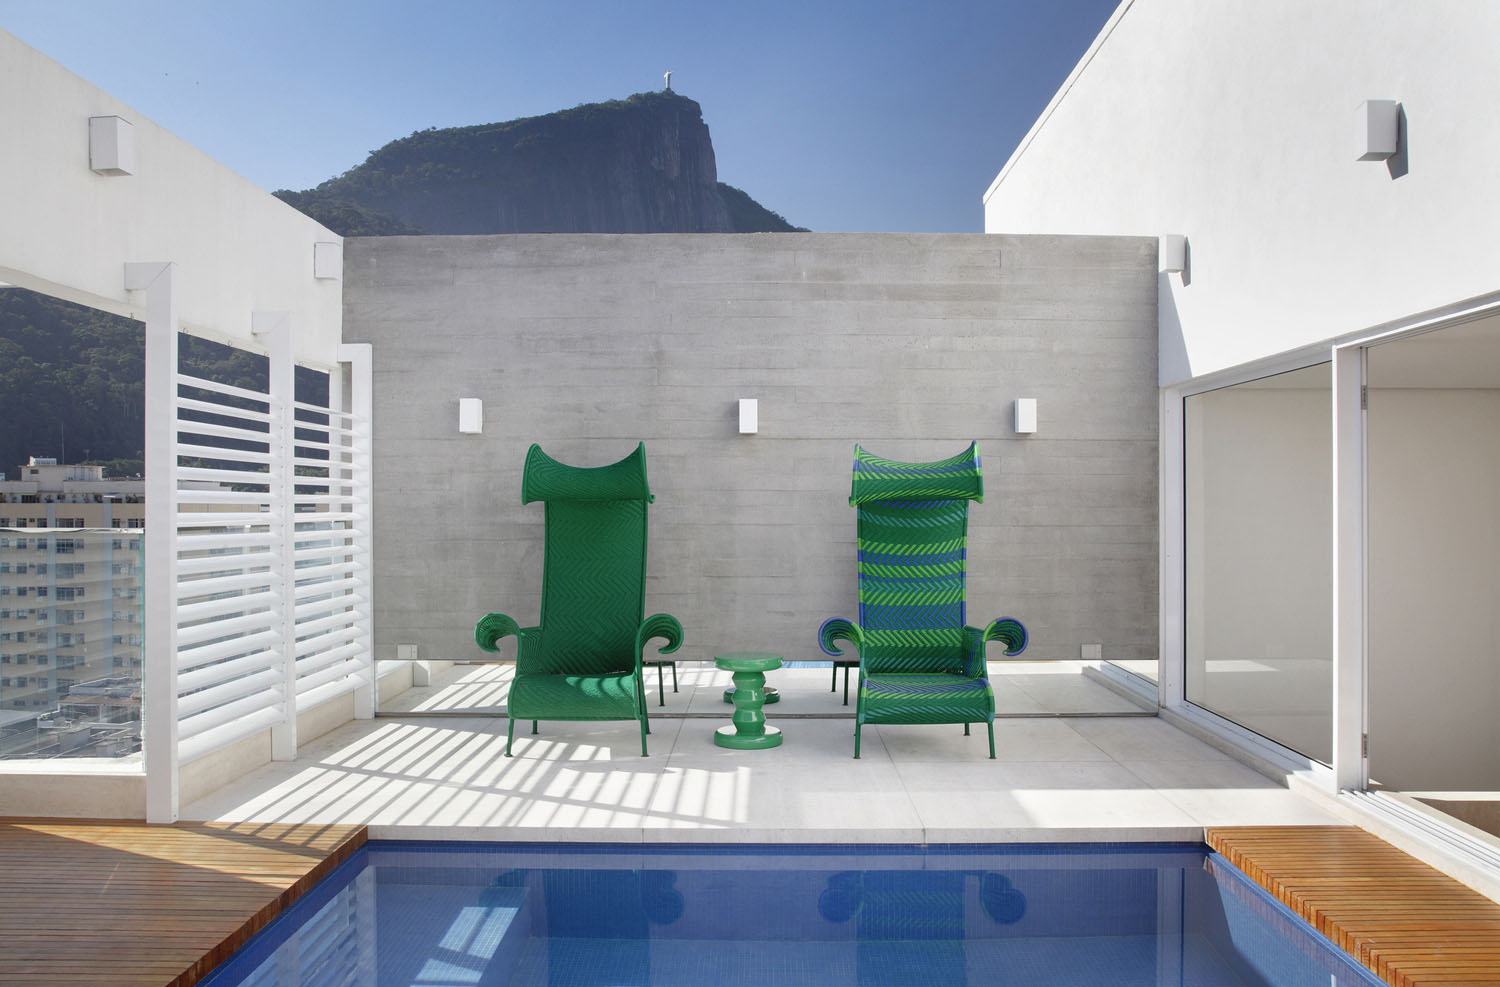 Green Outdoor Deck Chairs